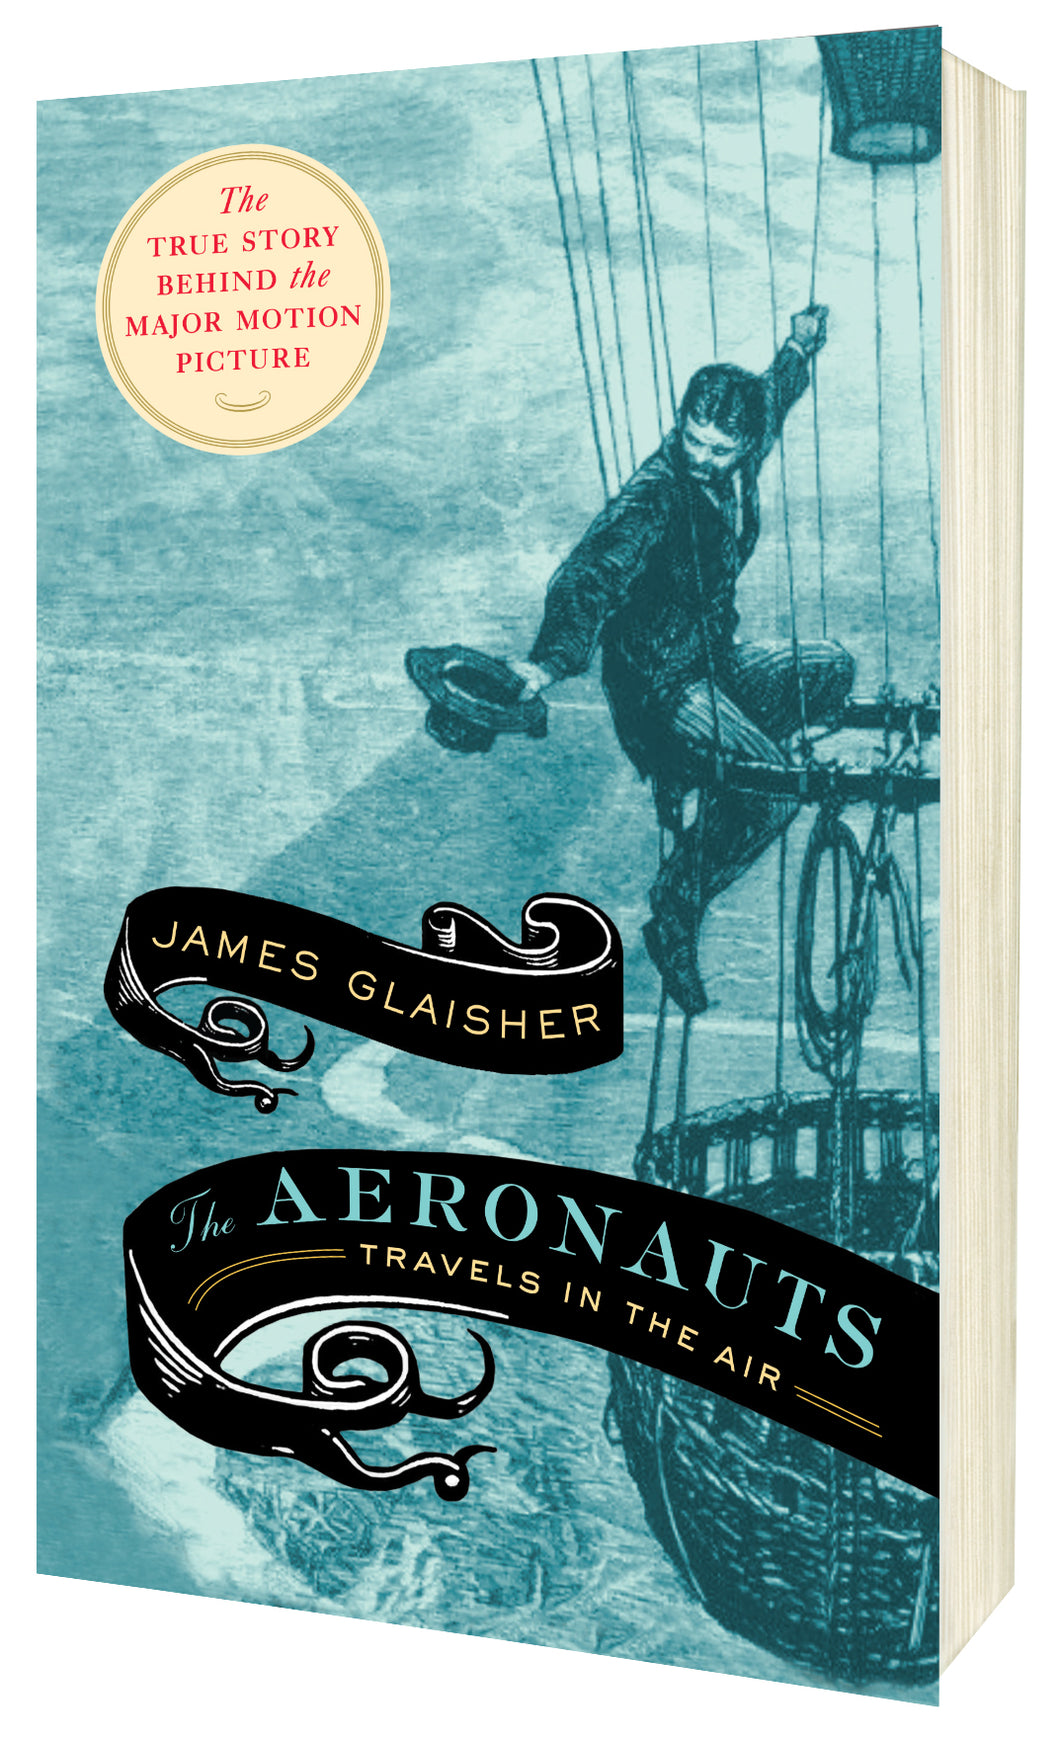 The Aeronauts: TRAVELS IN THE AIR by James Glaisher